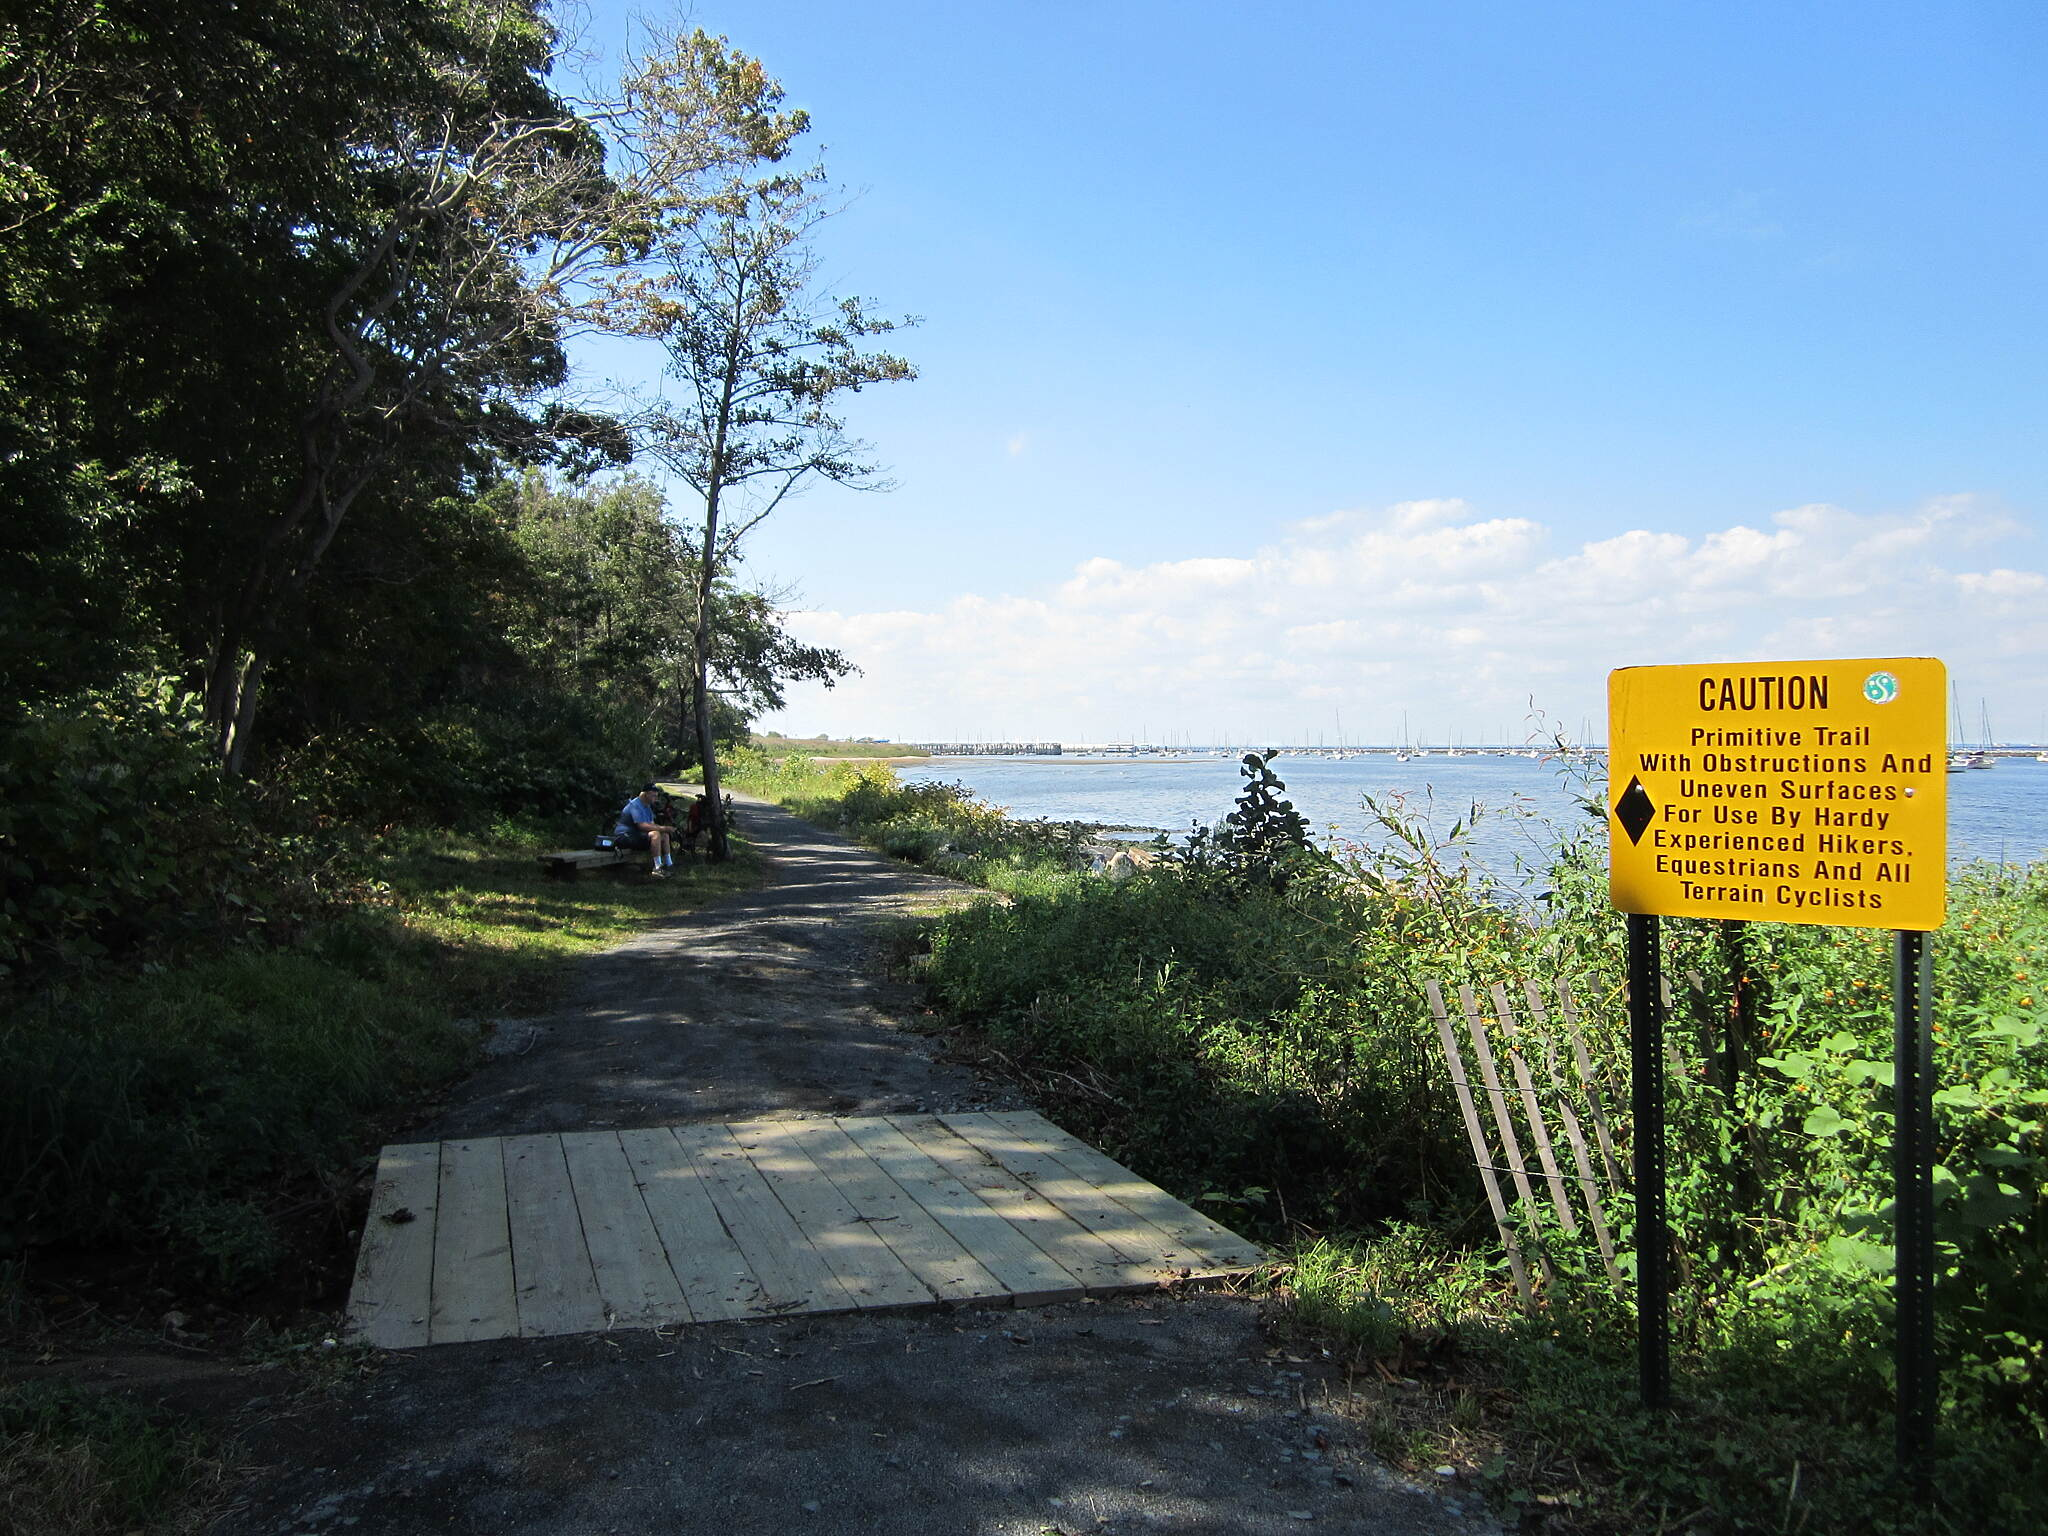 Bayshore Trail (Henry Hudson Trail) Sign The bench mid-way through the trail is a great place to take a break and have a snack